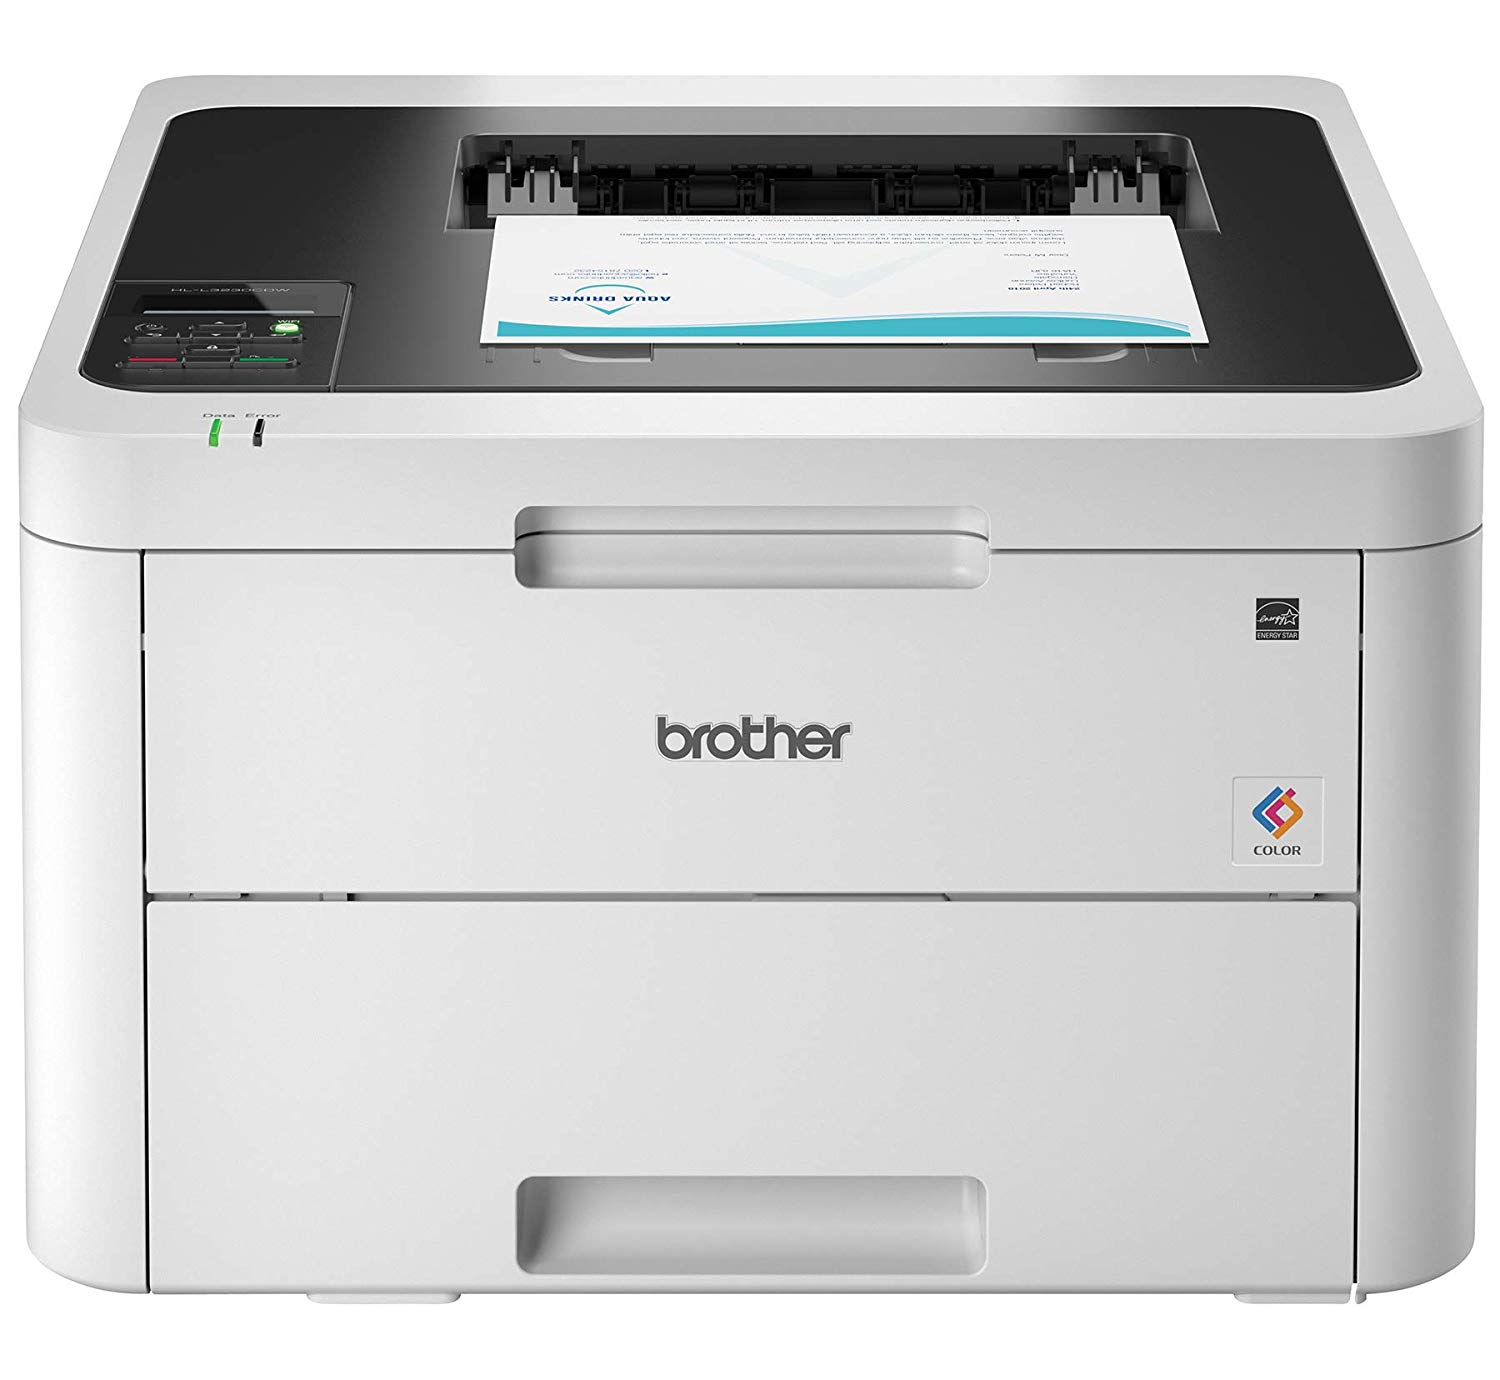 BrotherCompact Digital Color Laser Printer only $179.99! (save $70)